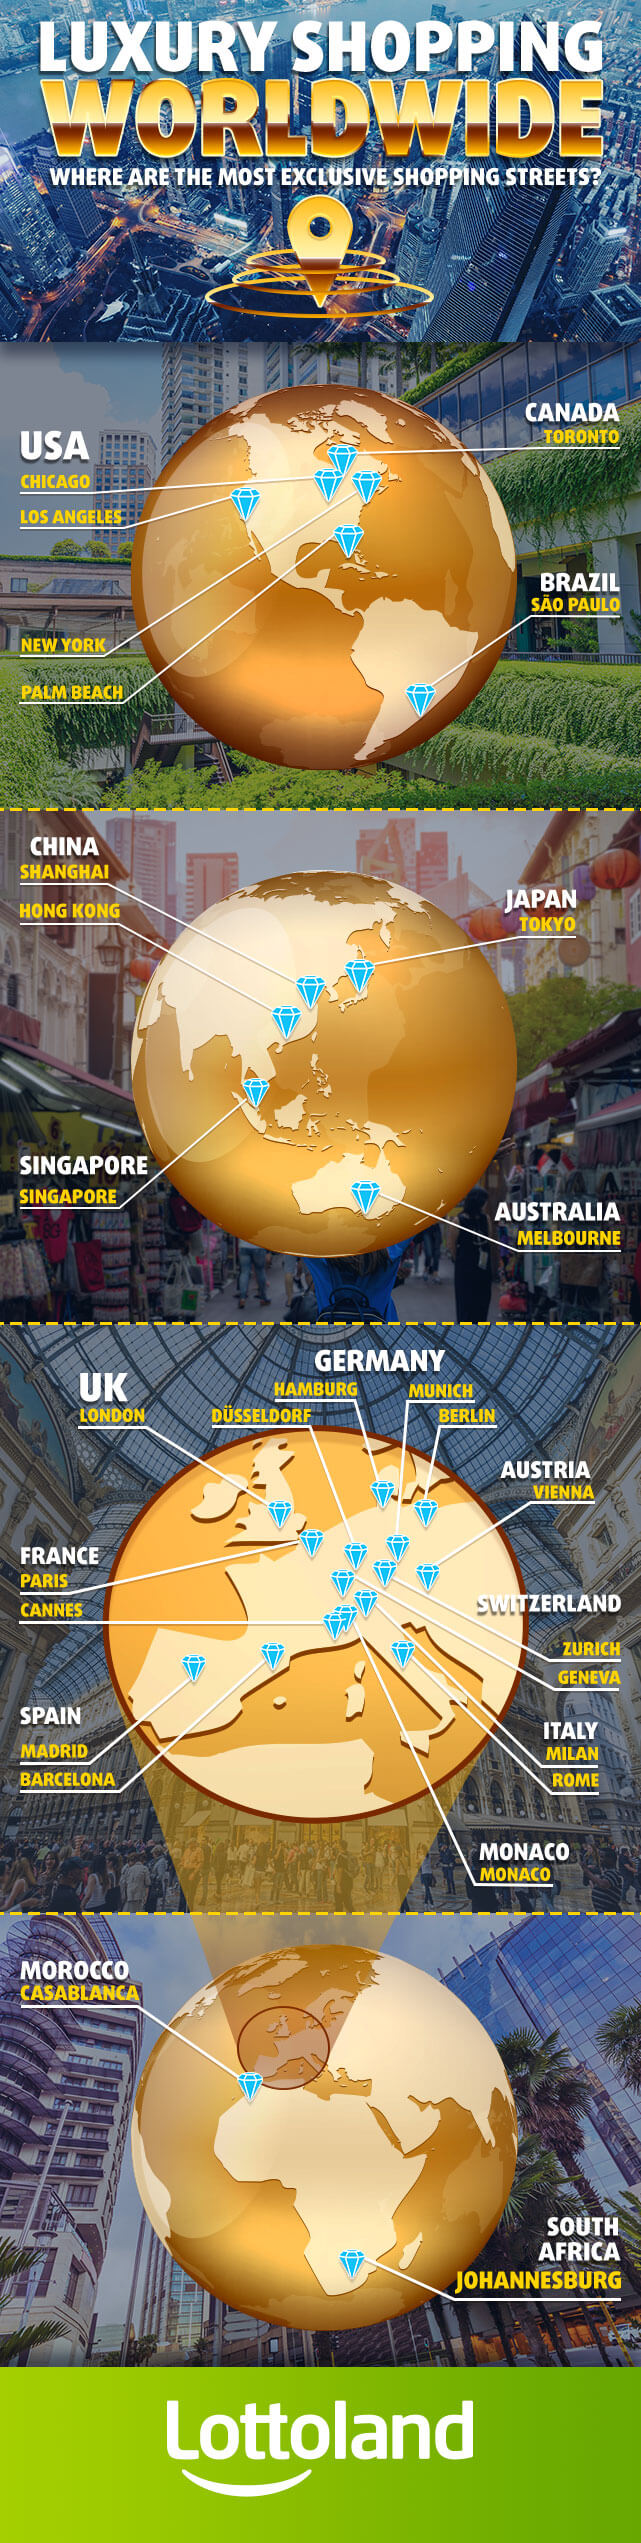 Infographic showing luxury shopping streets around the world